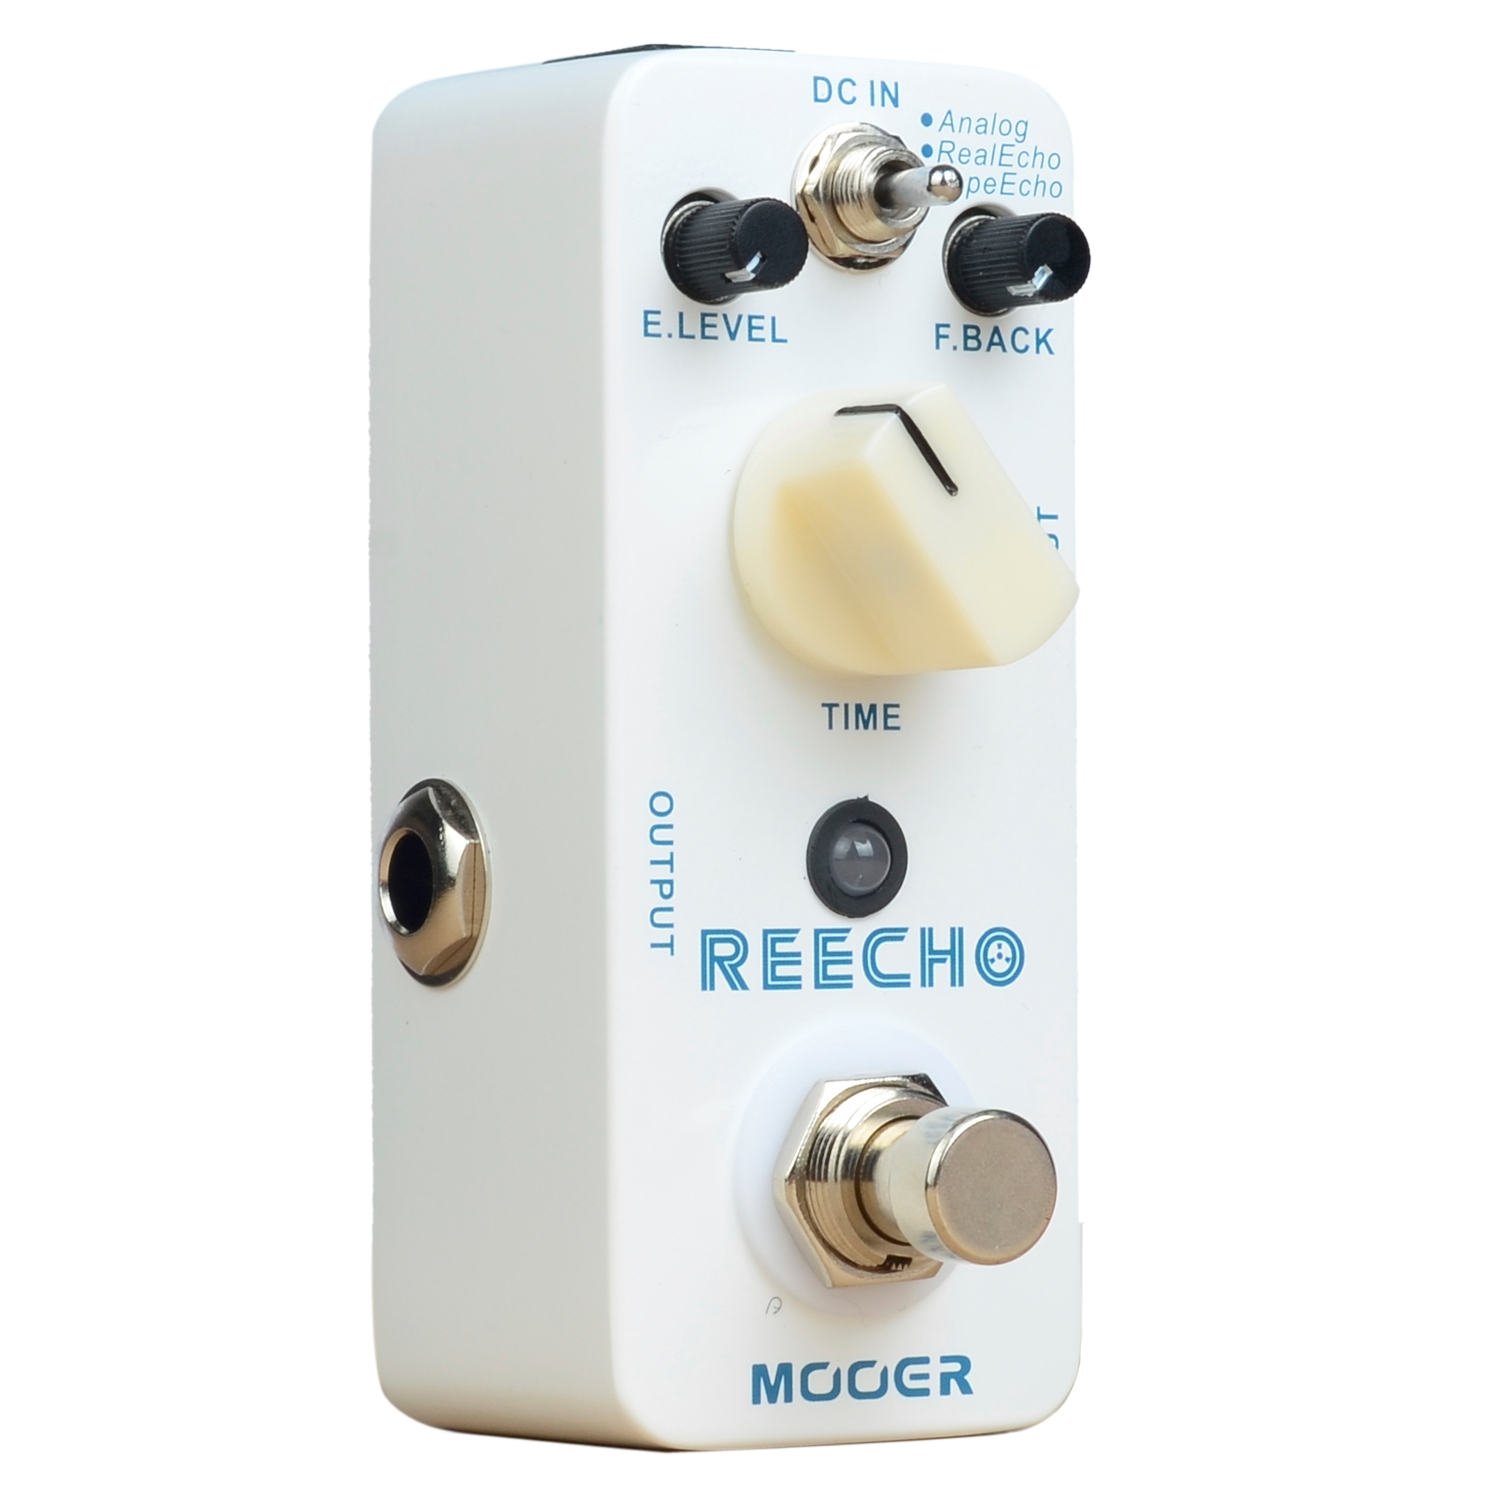 Mooer Reecho Delay Electric Guitar Pedal Effect Electric Bass True Bypass Effects Analog Real Echo Tape Echo free shipping new guitar effect pedal mooer ana echo analog delay pedal pedal true bypass